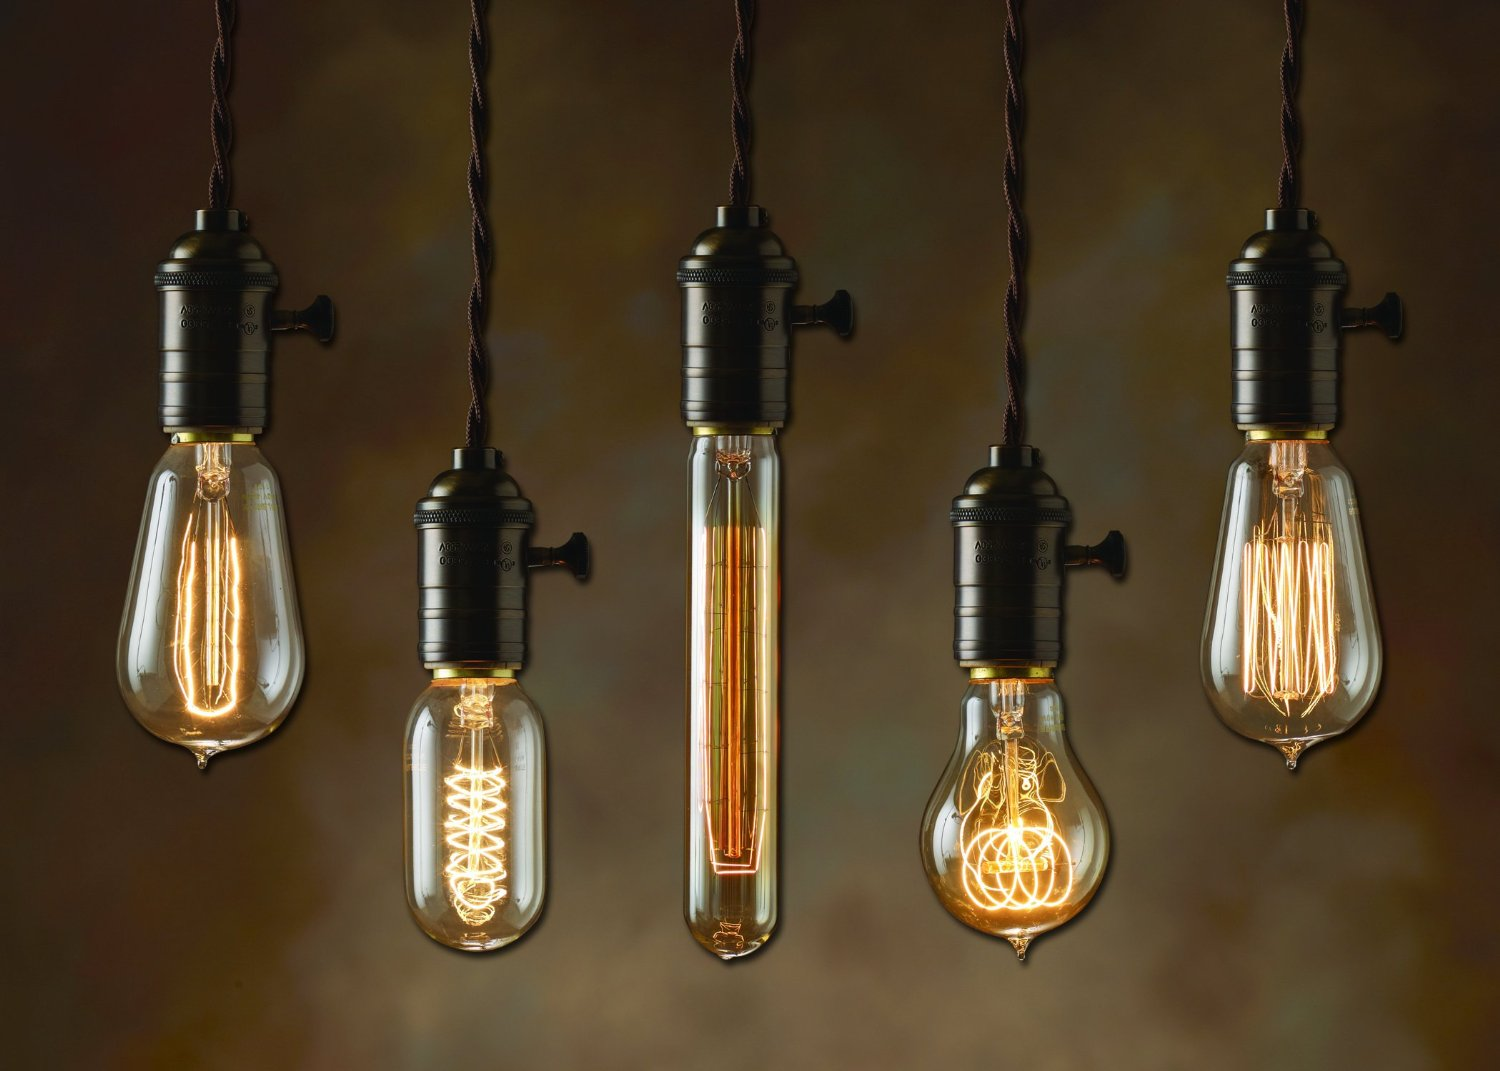 Vintage light bulbs stuff you should have for Ampoule suspension luminaire